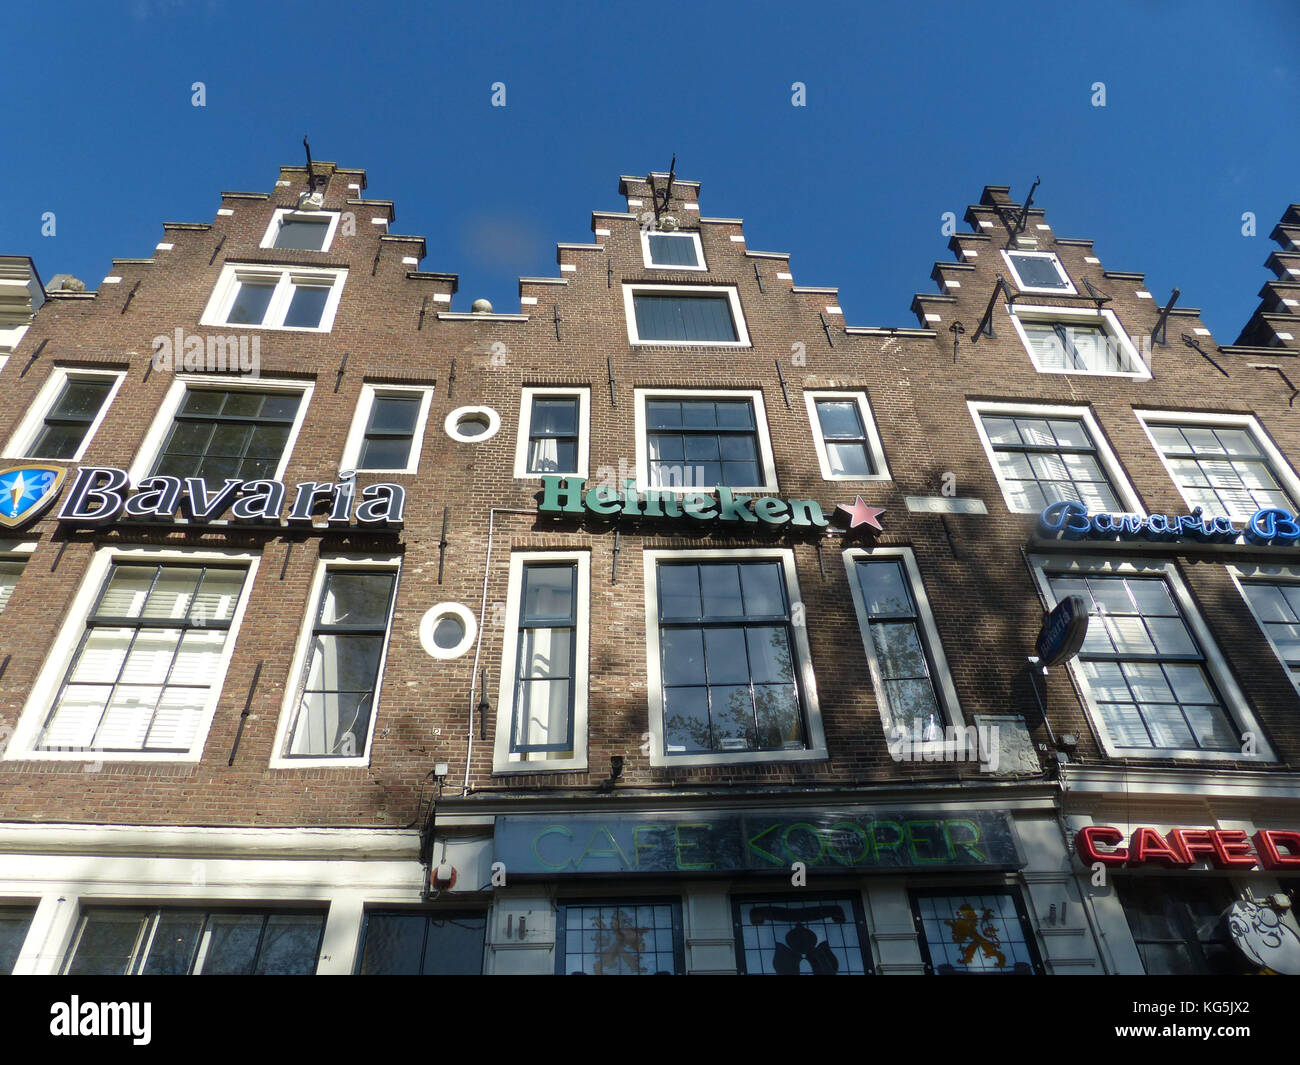 Amsterdam townhouses with beer ads - Stock Image